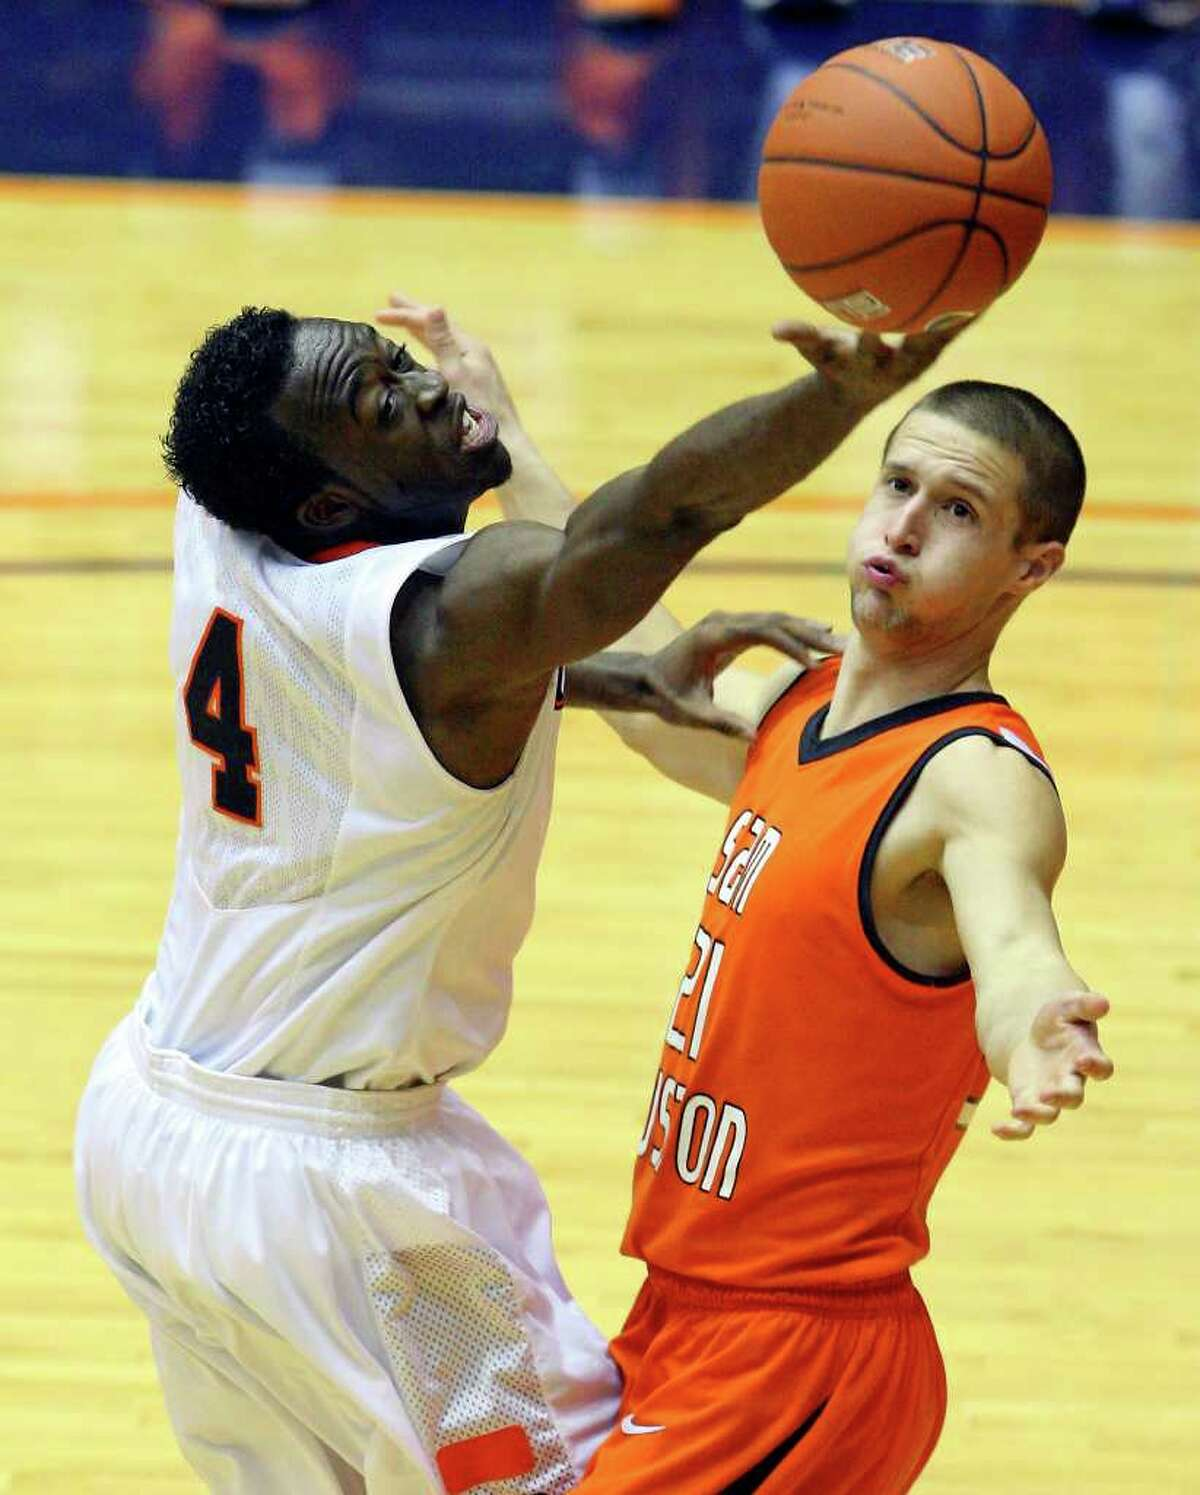 FOR SPORTS - UTSA's Sei Paye grabs for a rebound against Sam Houston State's Lance Pevehouse during second half action Saturday Jan. 8, 2011 at the Convocation Center. Sam Houston State won 62-59.